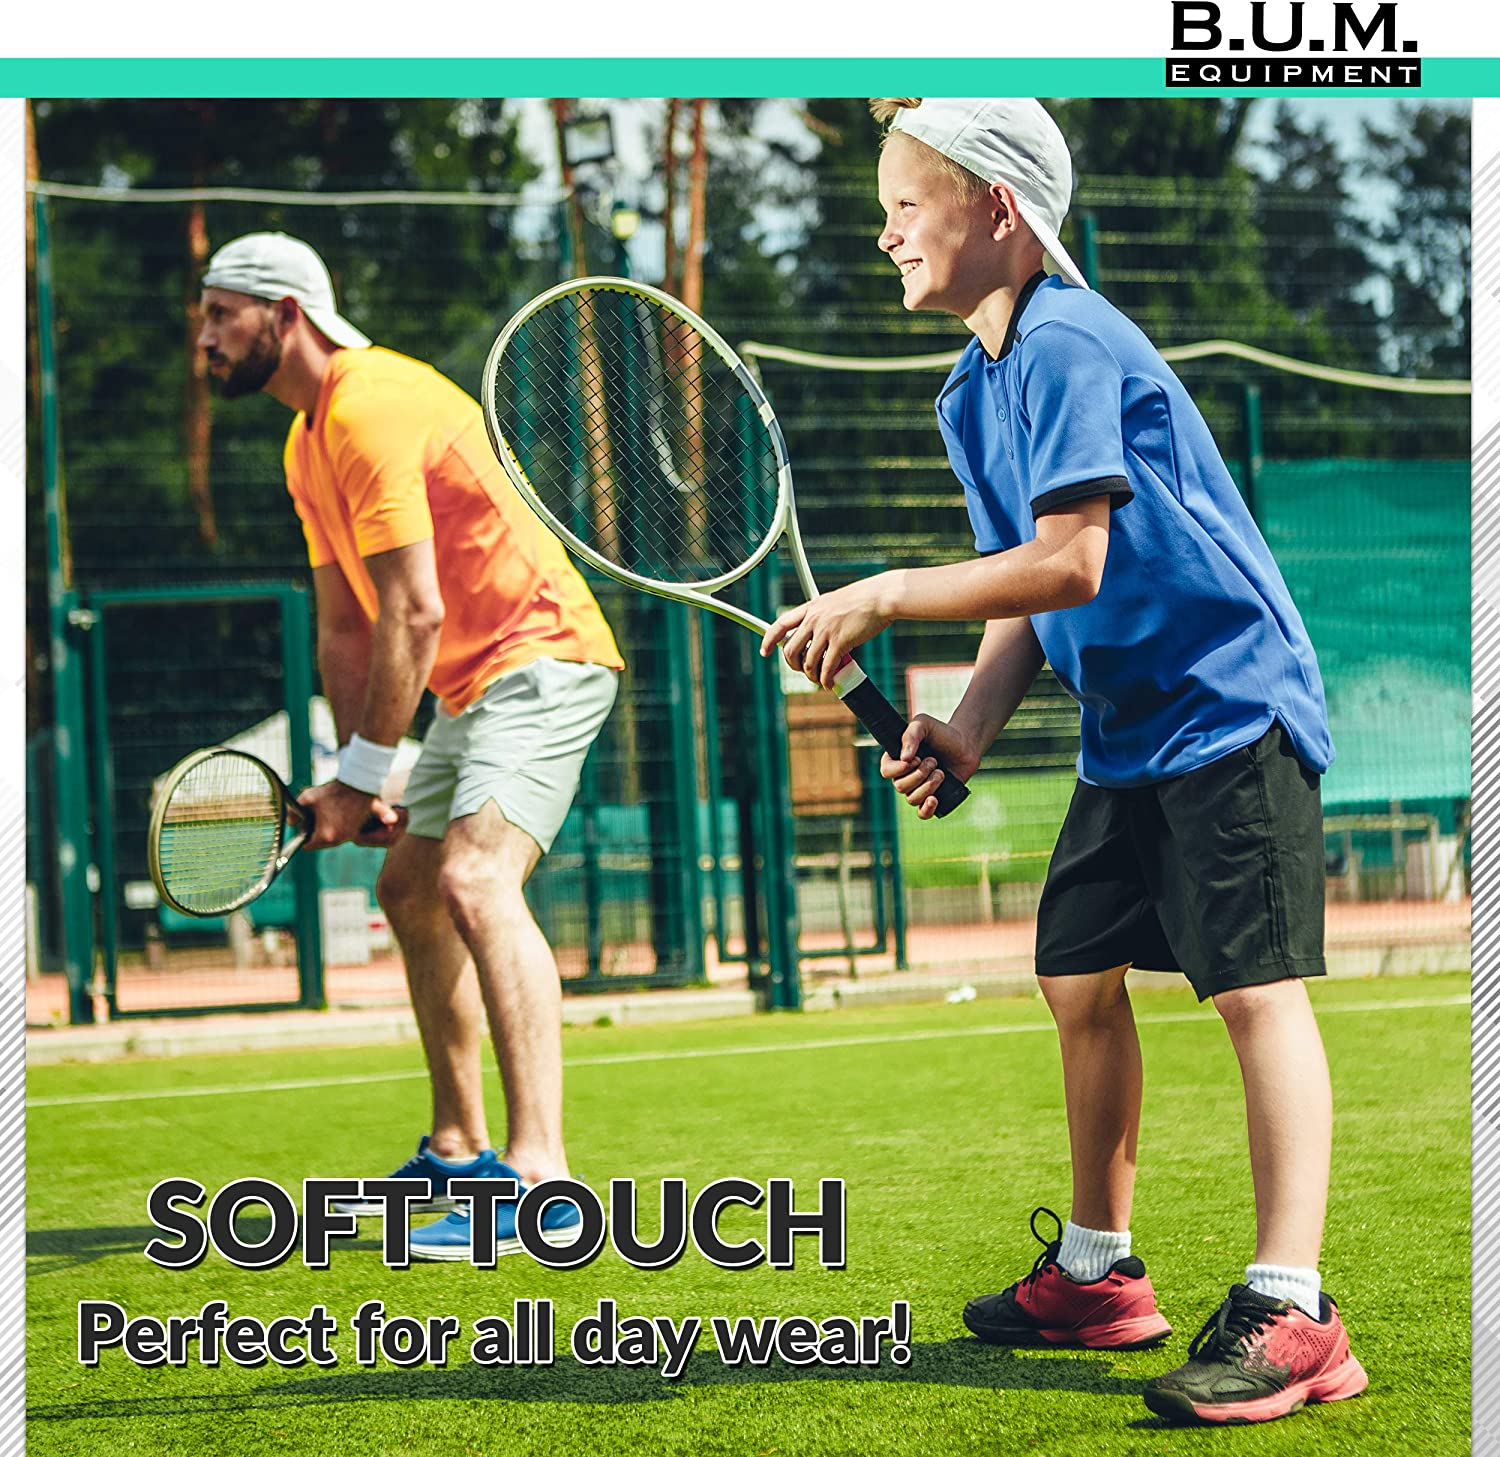 B.U.M 3 Pack Equipment Boys/' Performance Dry-Fit Compression Boxer Briefs